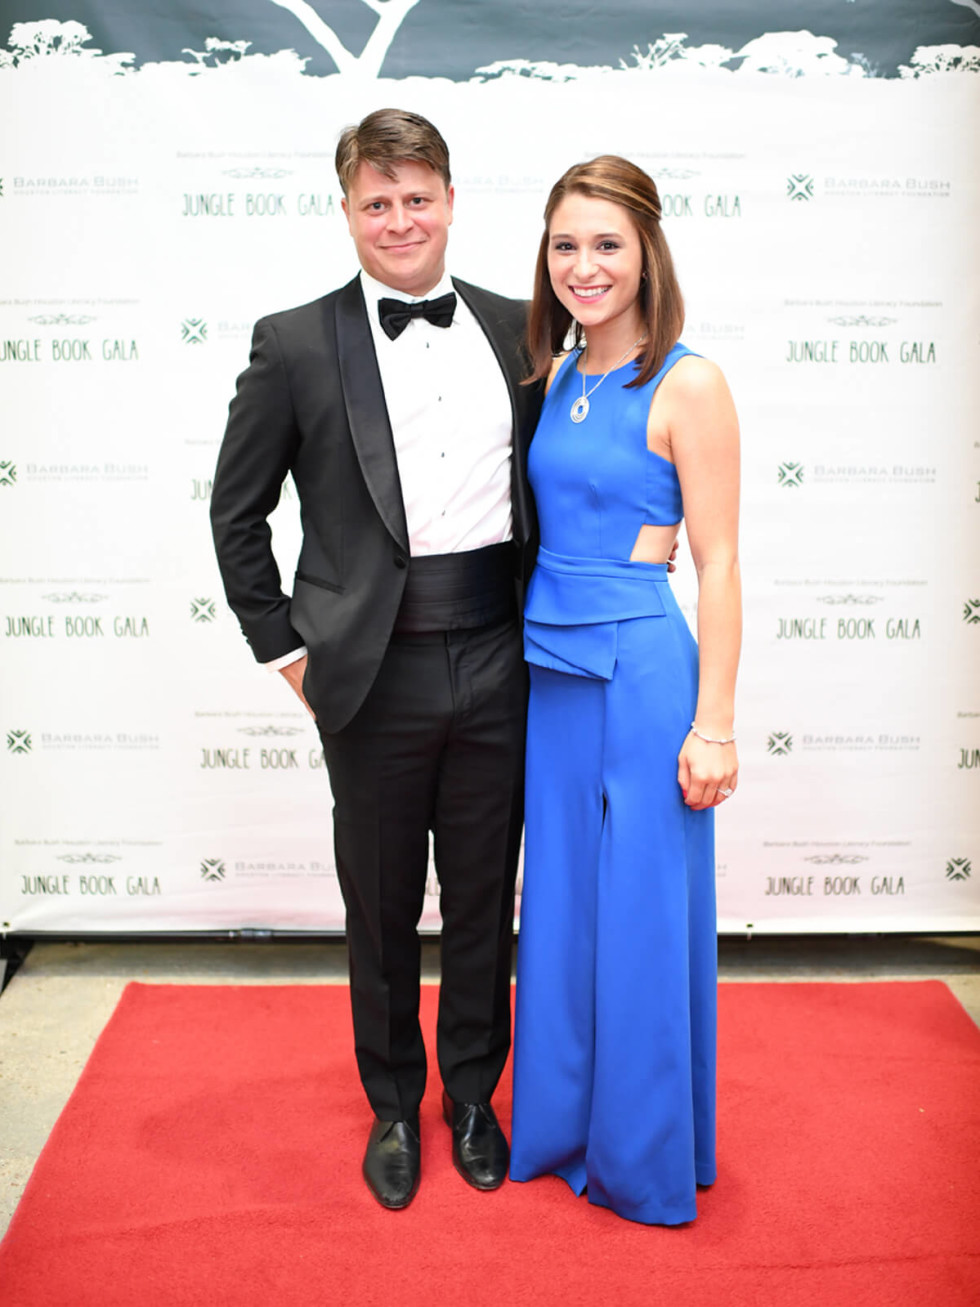 Jungle Book Gala, Austin Boatwright, Morgan Relyea